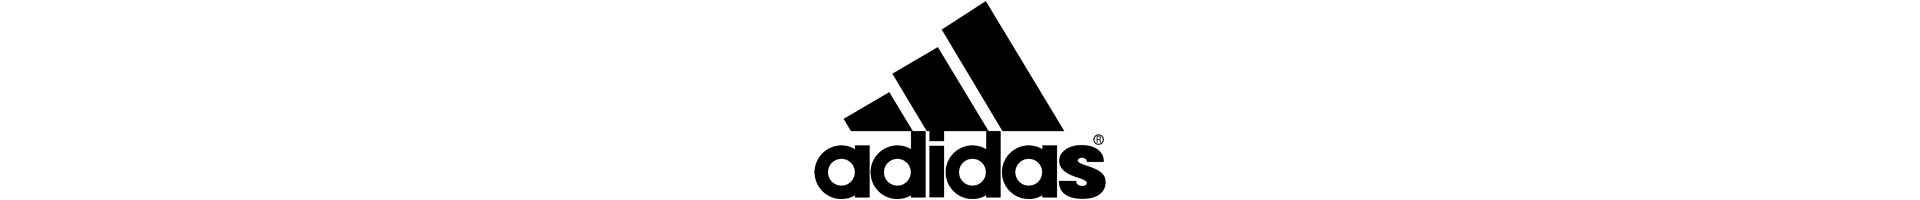 Videos for the Adidas brand